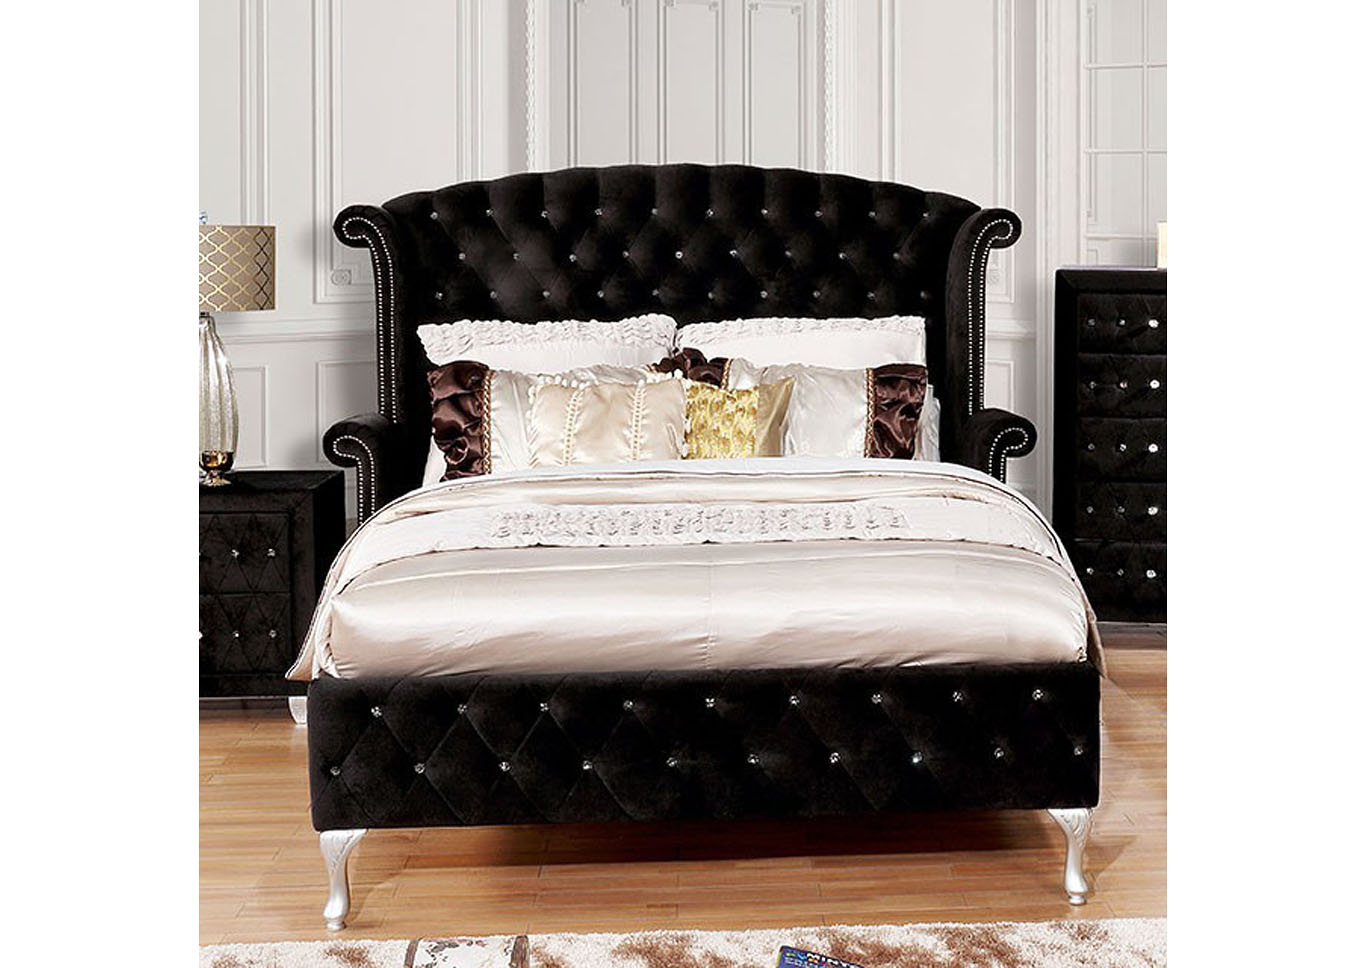 Alzire Black Upholstered Queen Platform Bed,Furniture of America